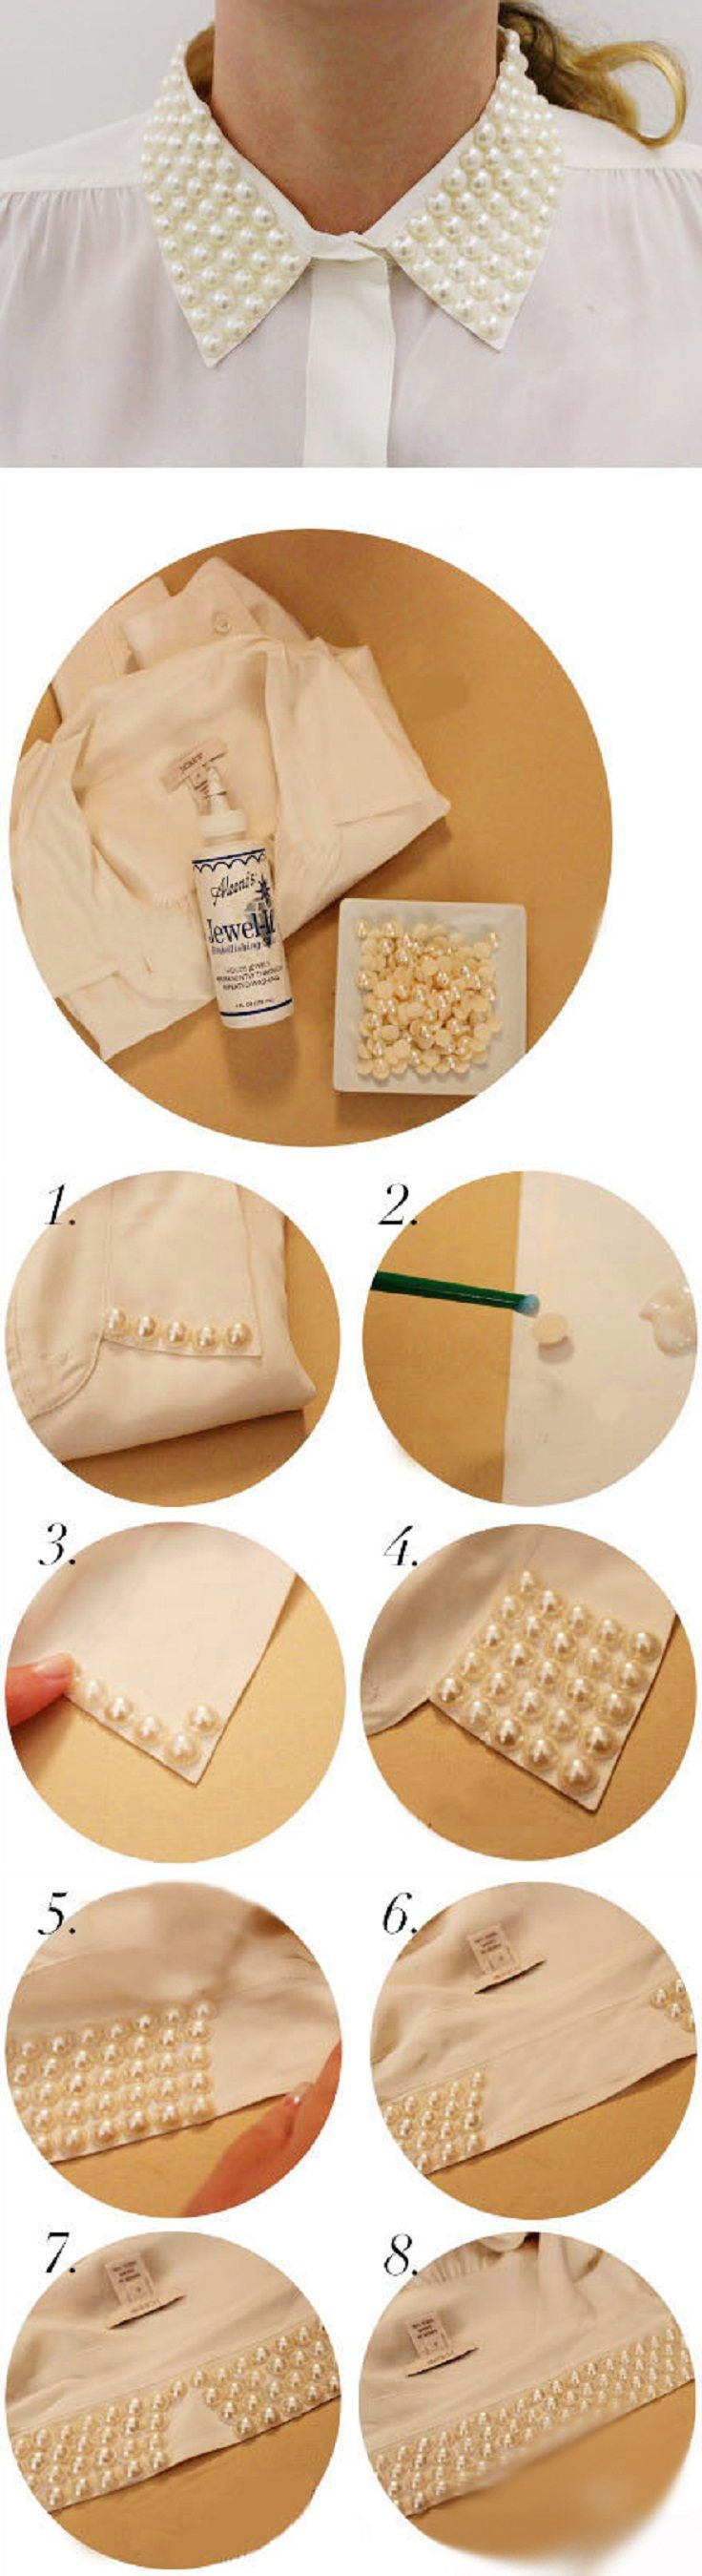 7 DIY Useful Fashionable Ideas I have been meaning to do this...